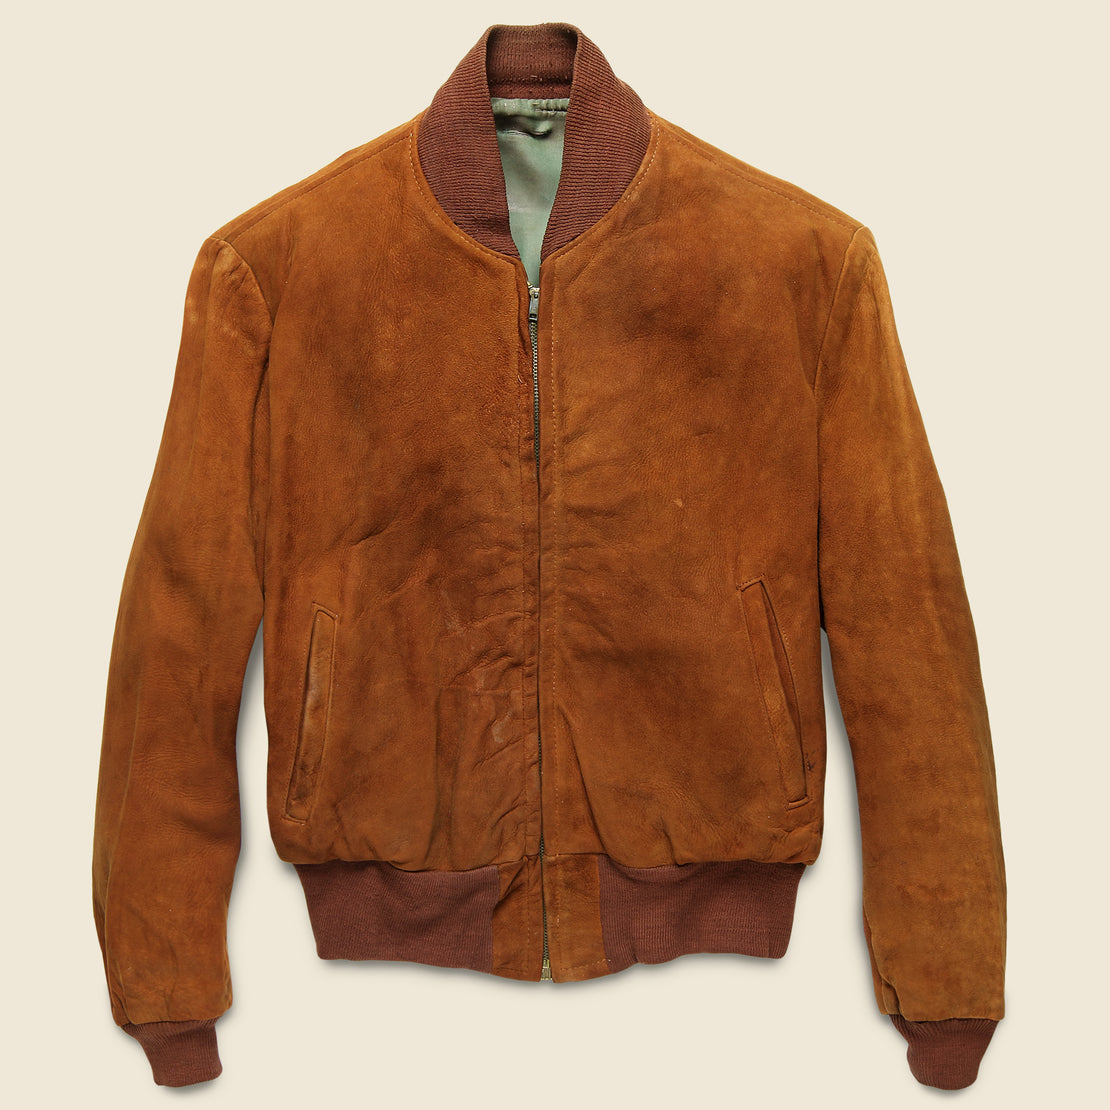 Vintage Suede Bomber Jacket - Copper